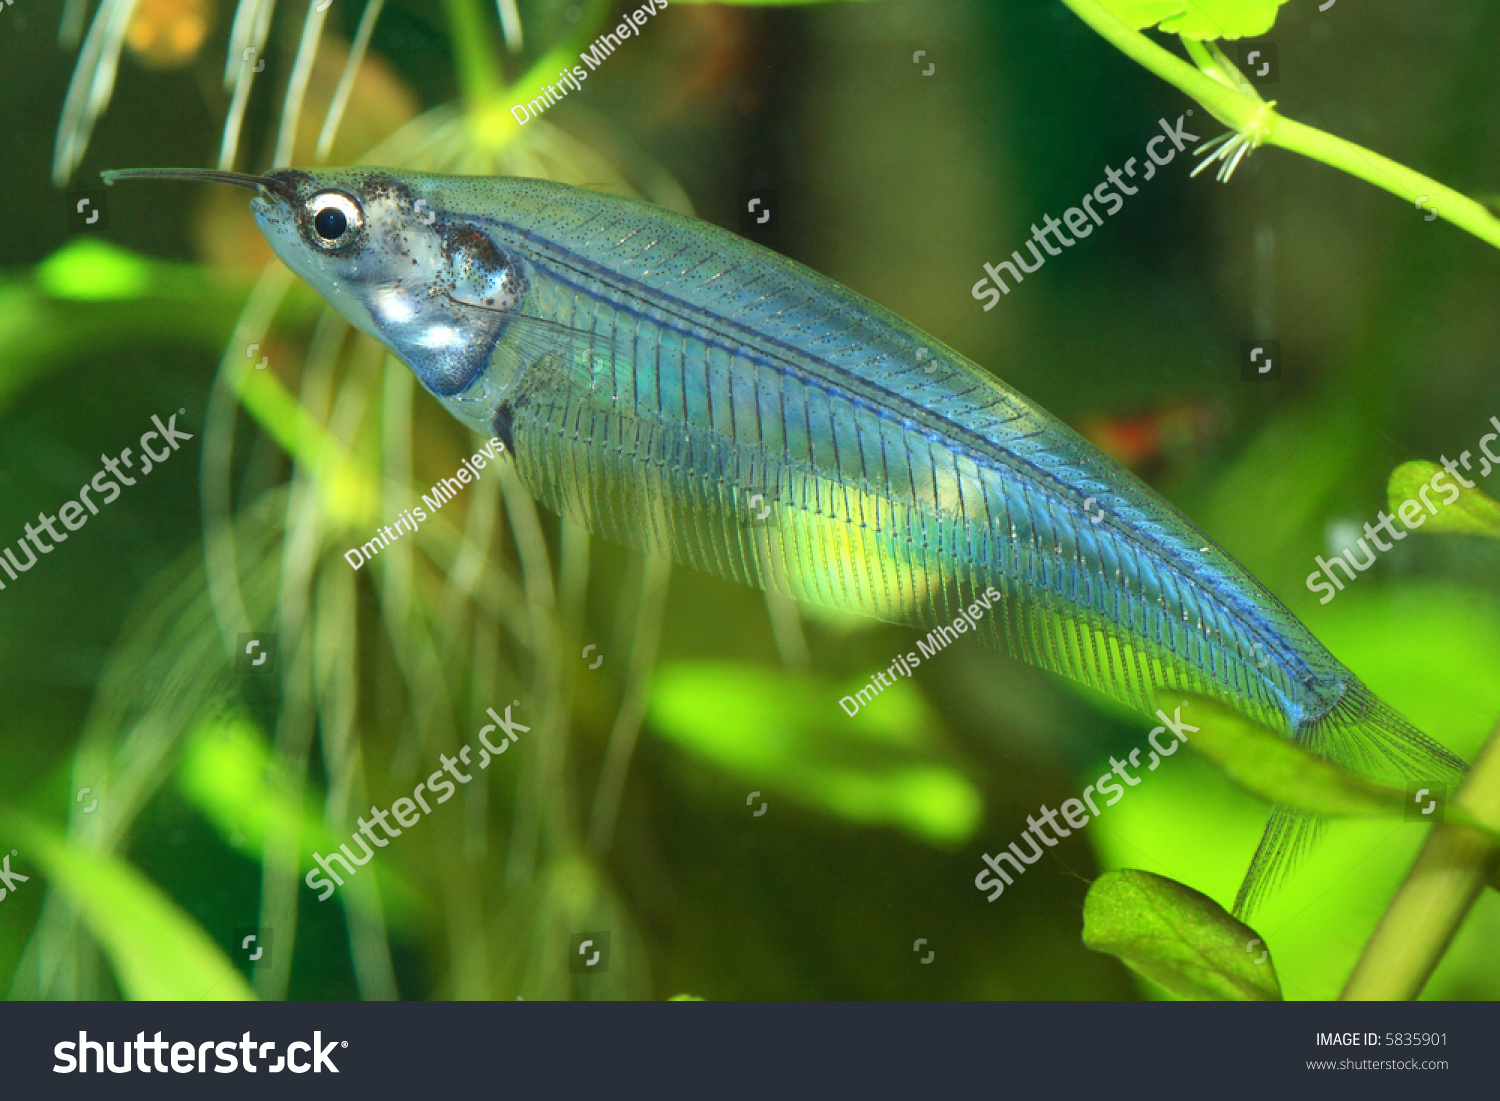 Weird transparent exotic fish in aquarium stock photo for Weird freshwater fish